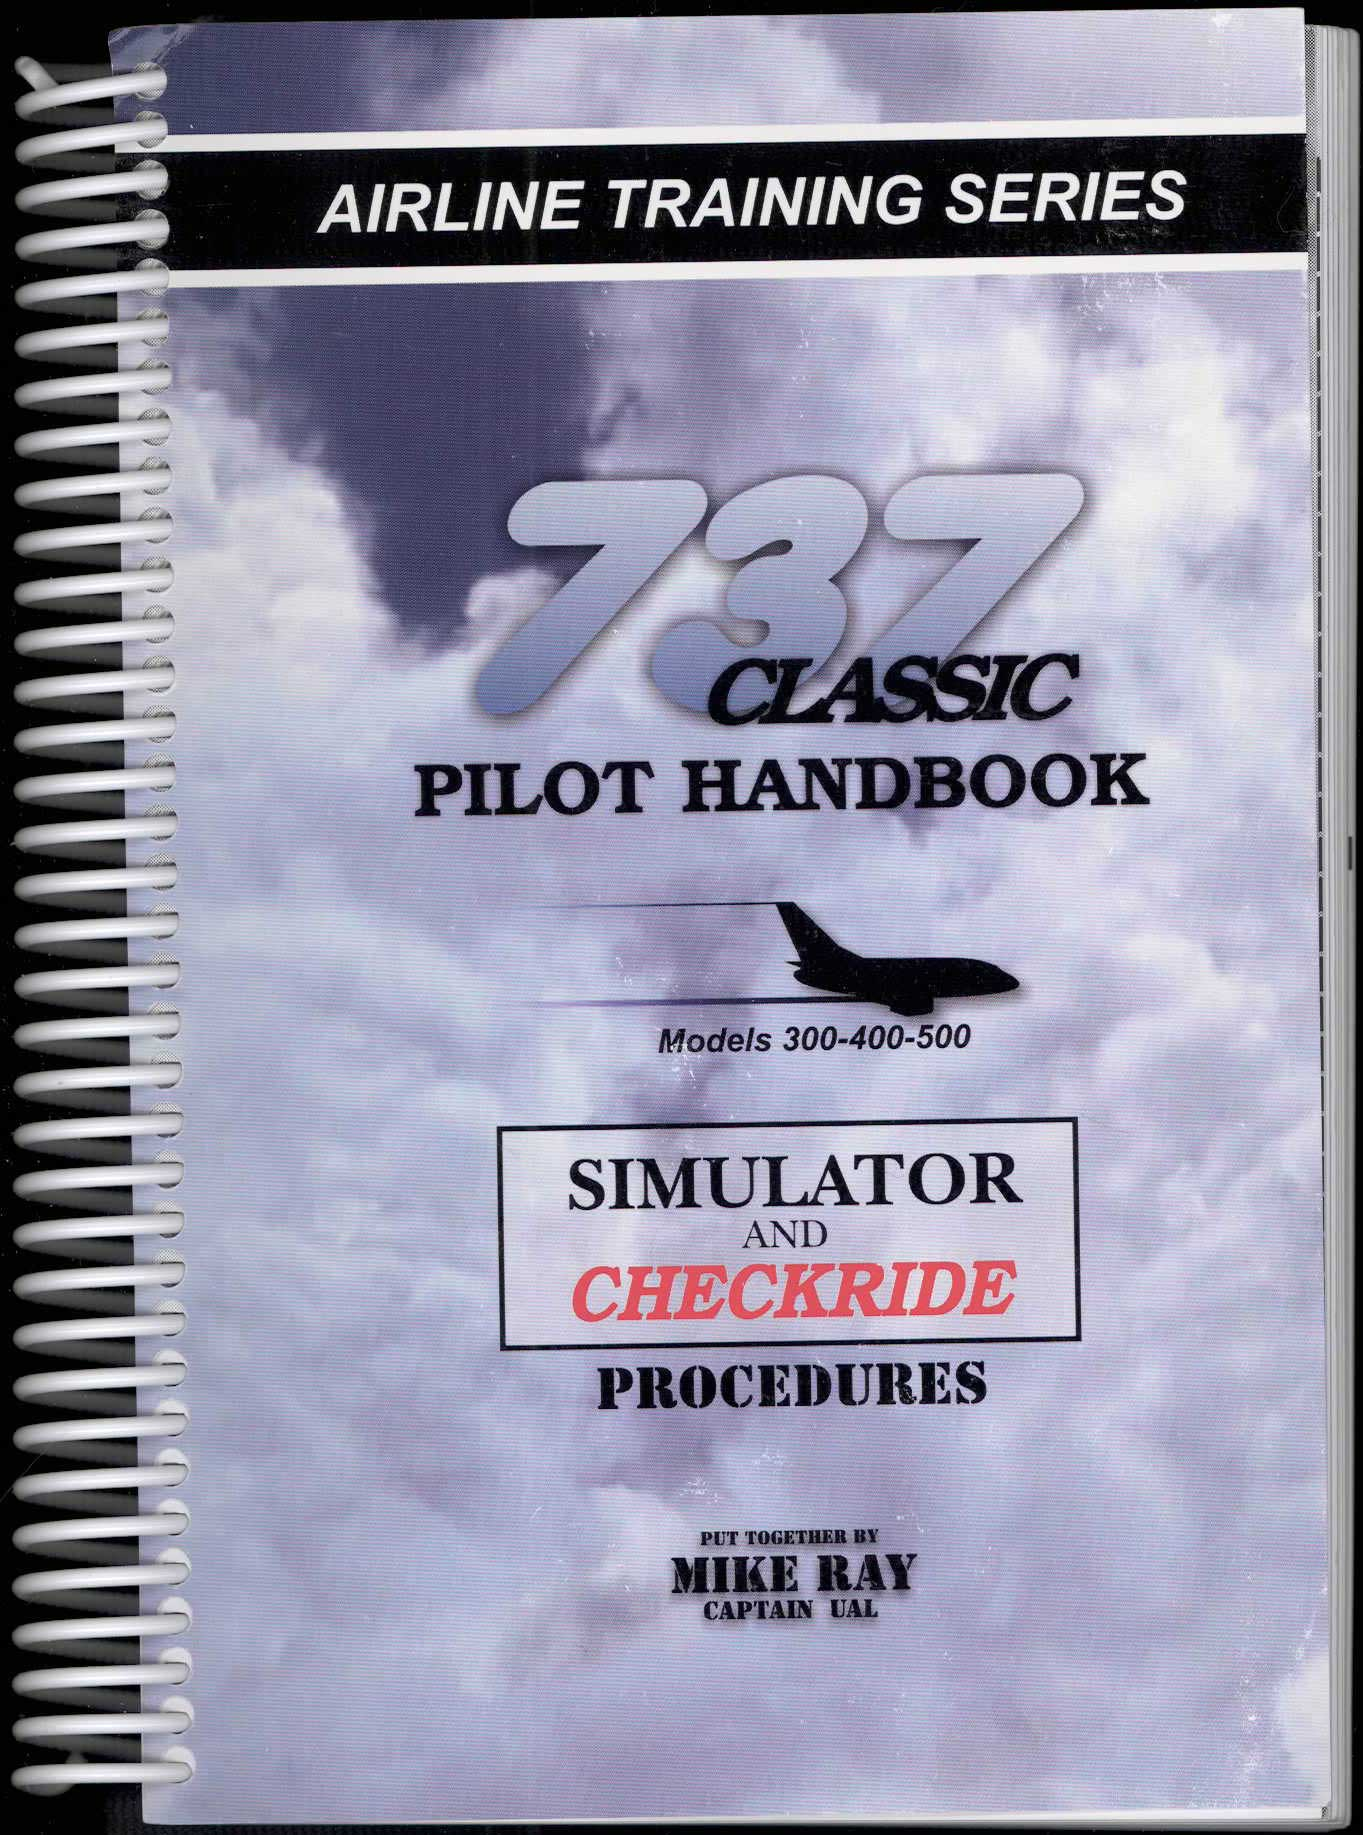 737 Classic Pilot Handbook 300-400-500 Simulator and Checkride